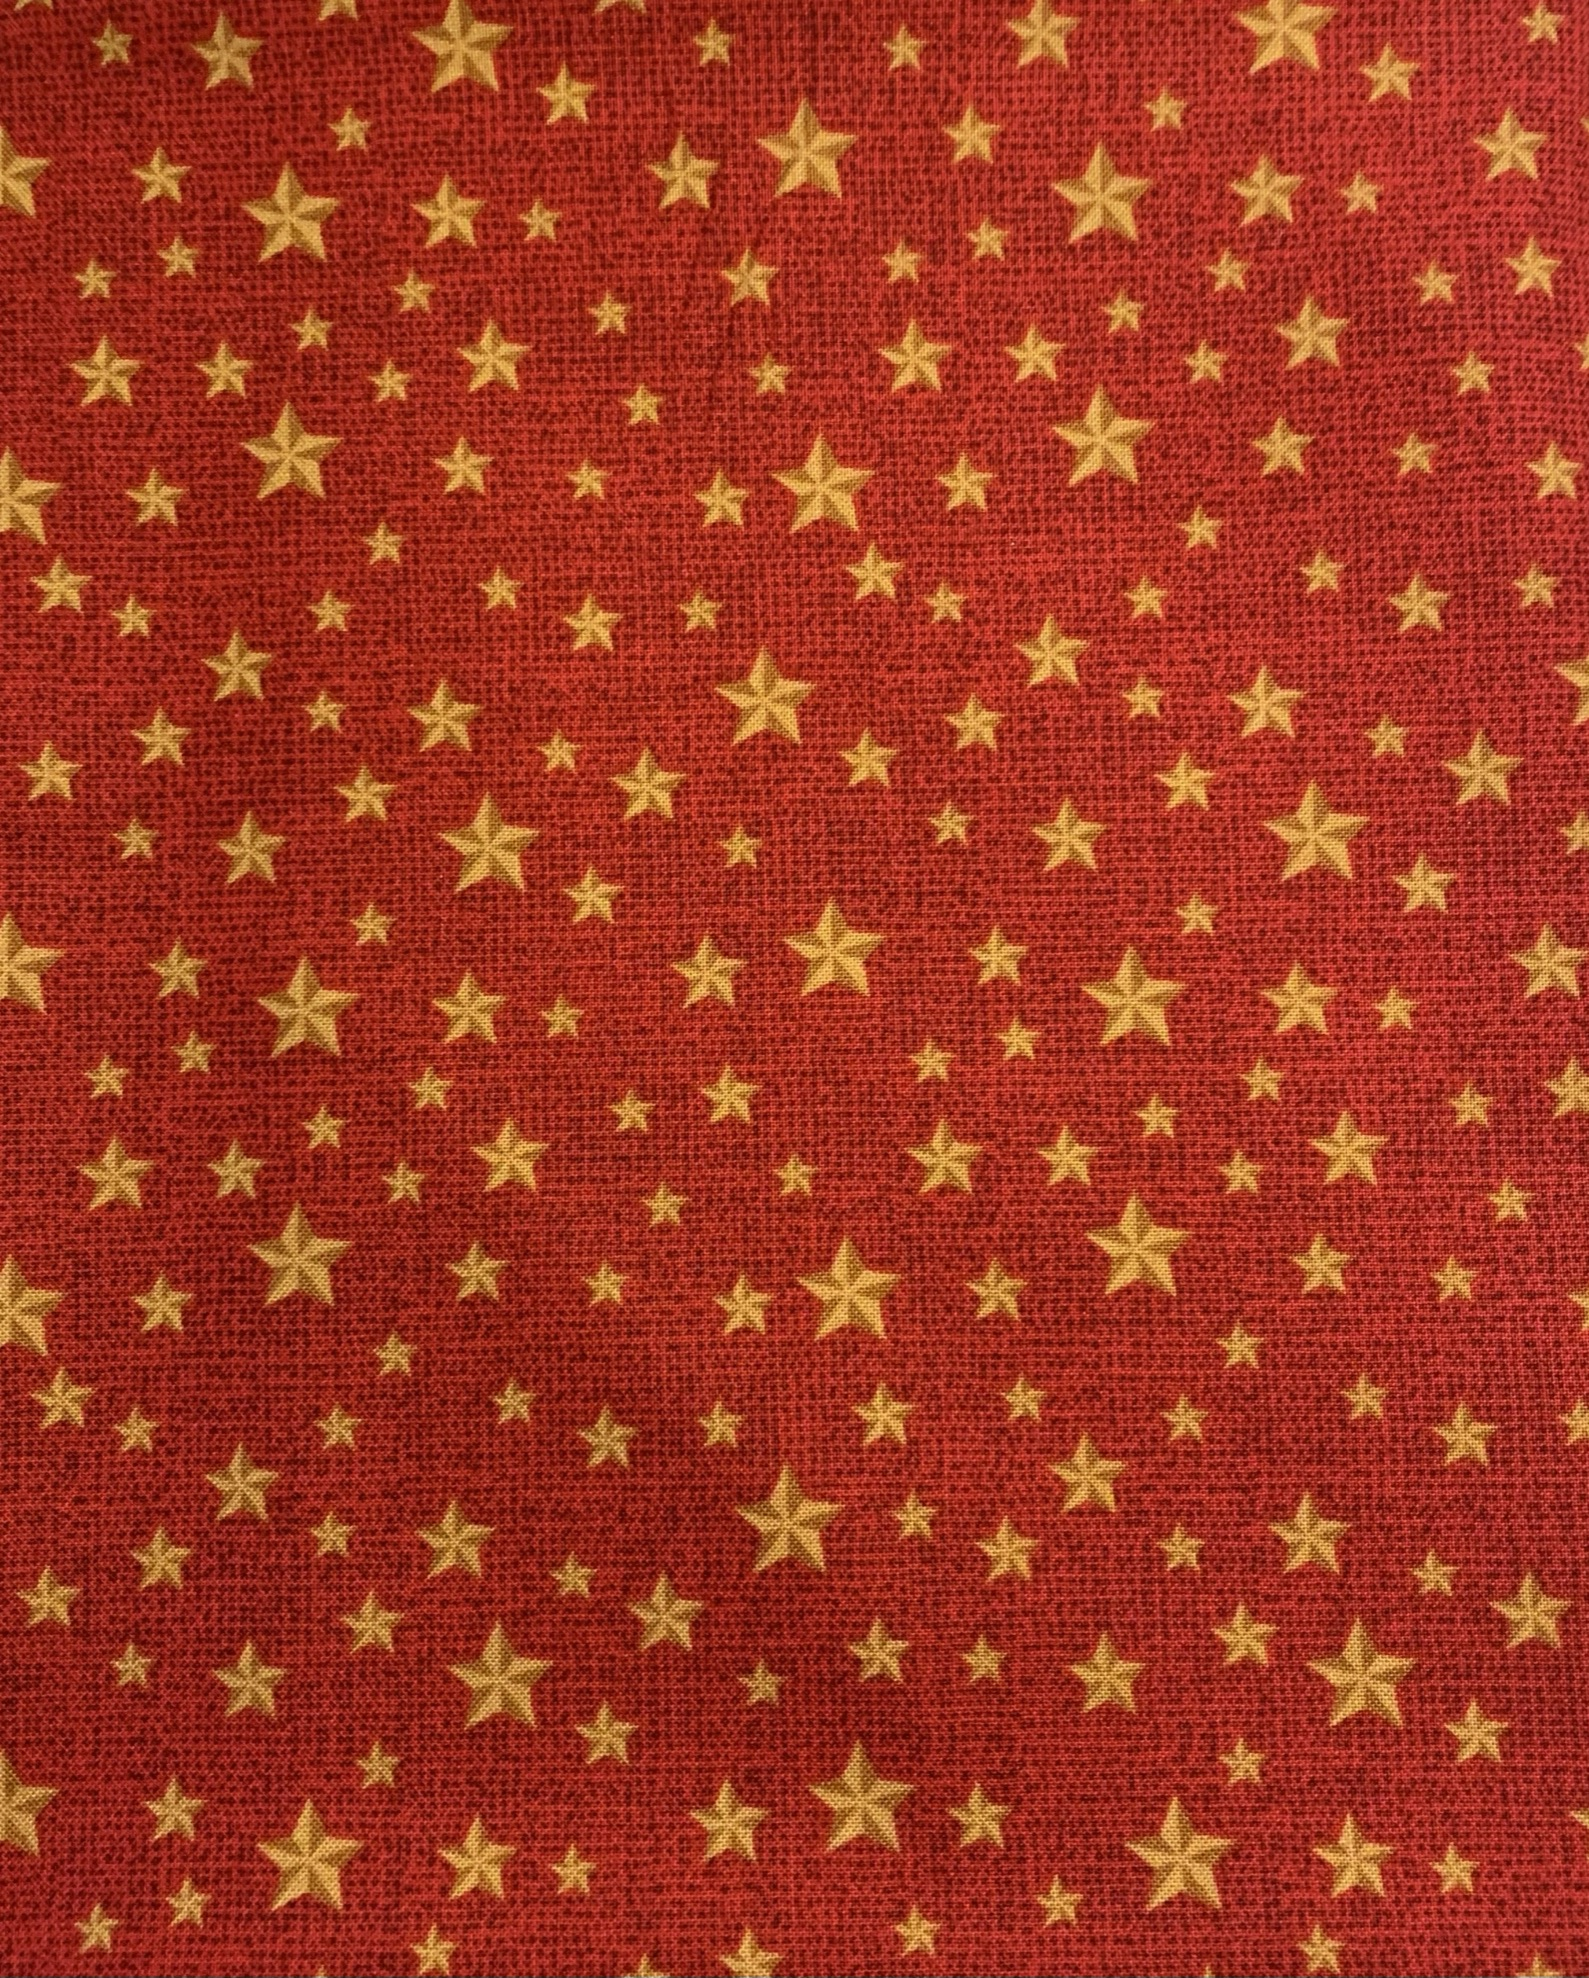 Red with gold stars